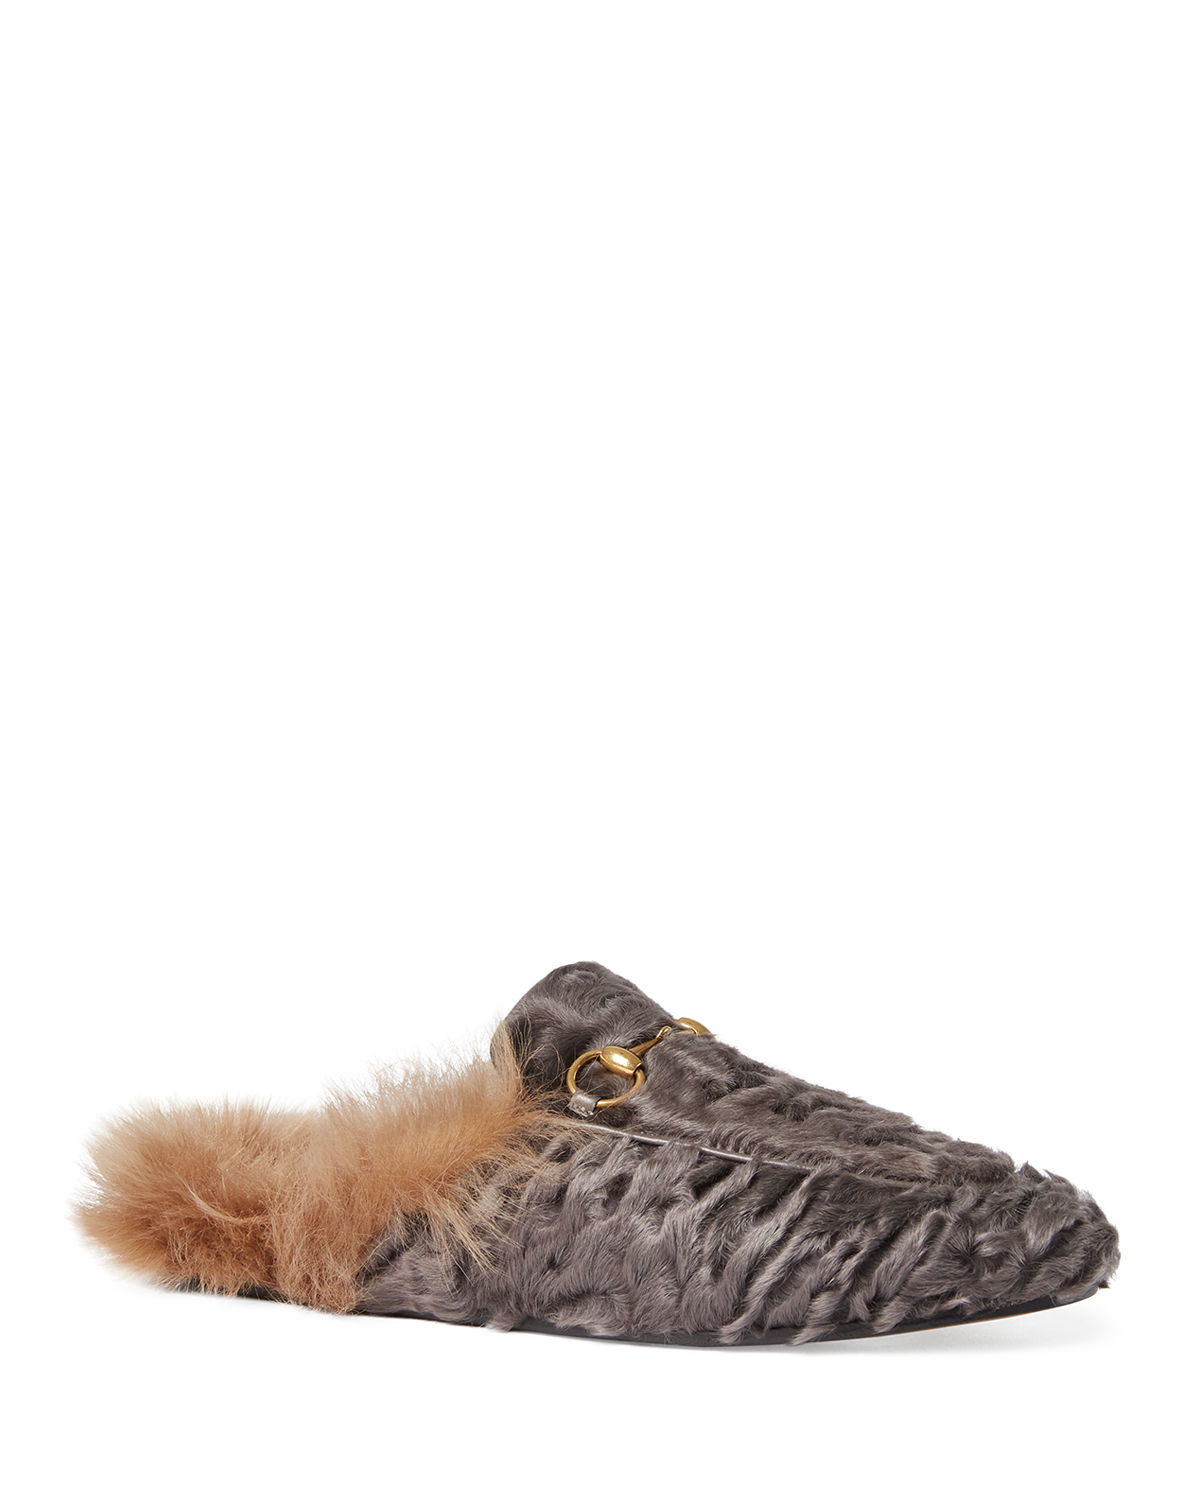 37a5c388e9a Gucci 10mm Princetown Shearling Fur Loafer